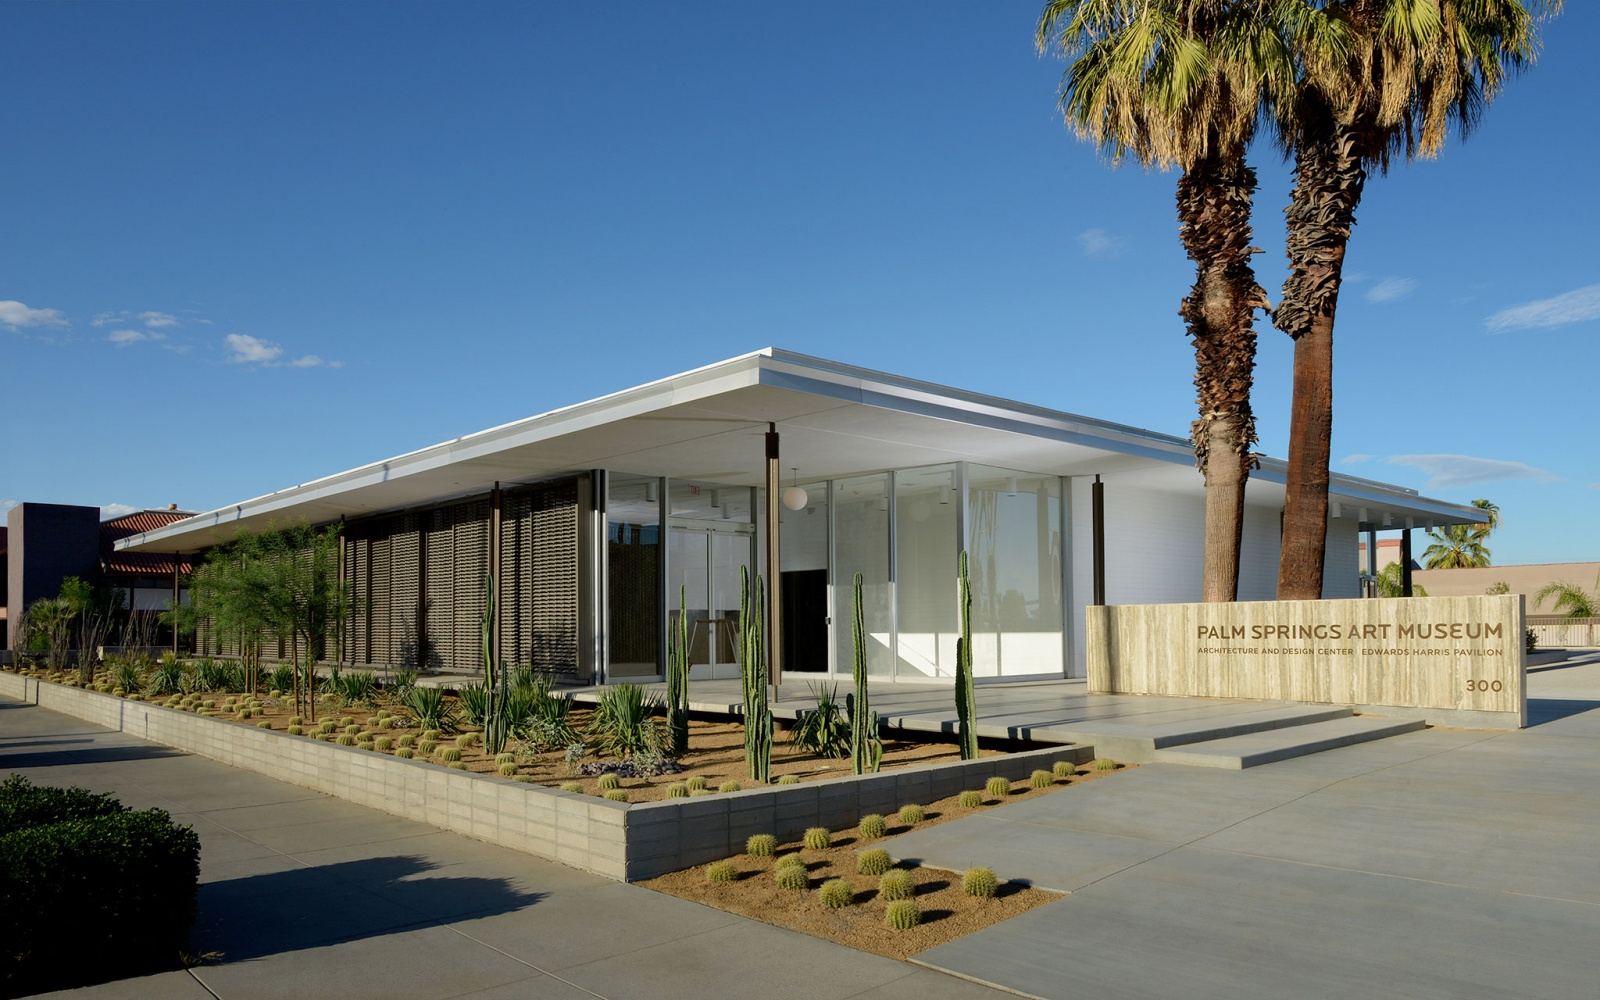 Architecture and Design Center, Palm Springs, CA